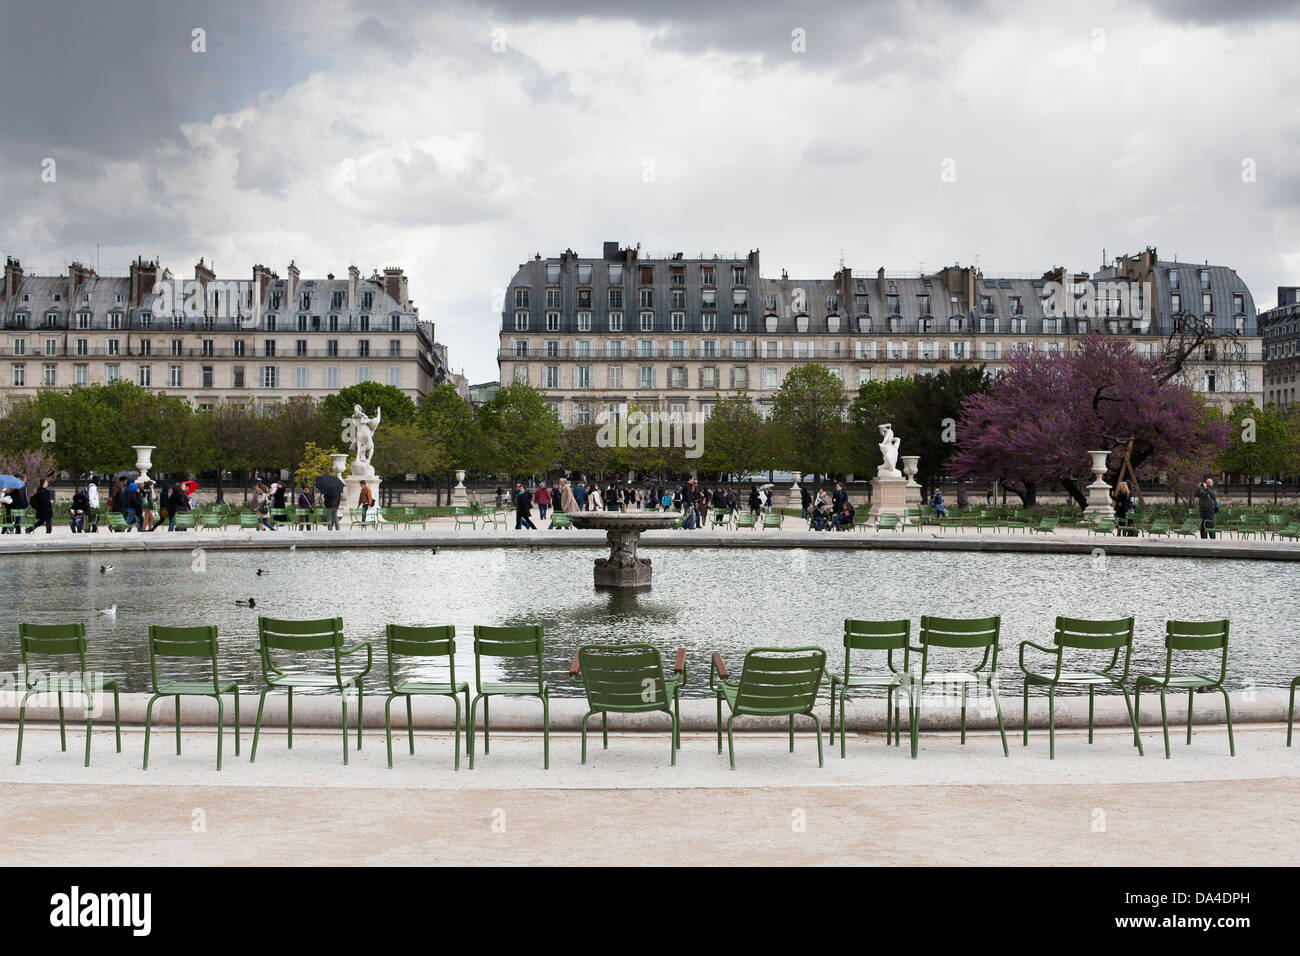 Empty chairs by Grand Bassin Octagonal in the Tuileries Garden - Stock Image